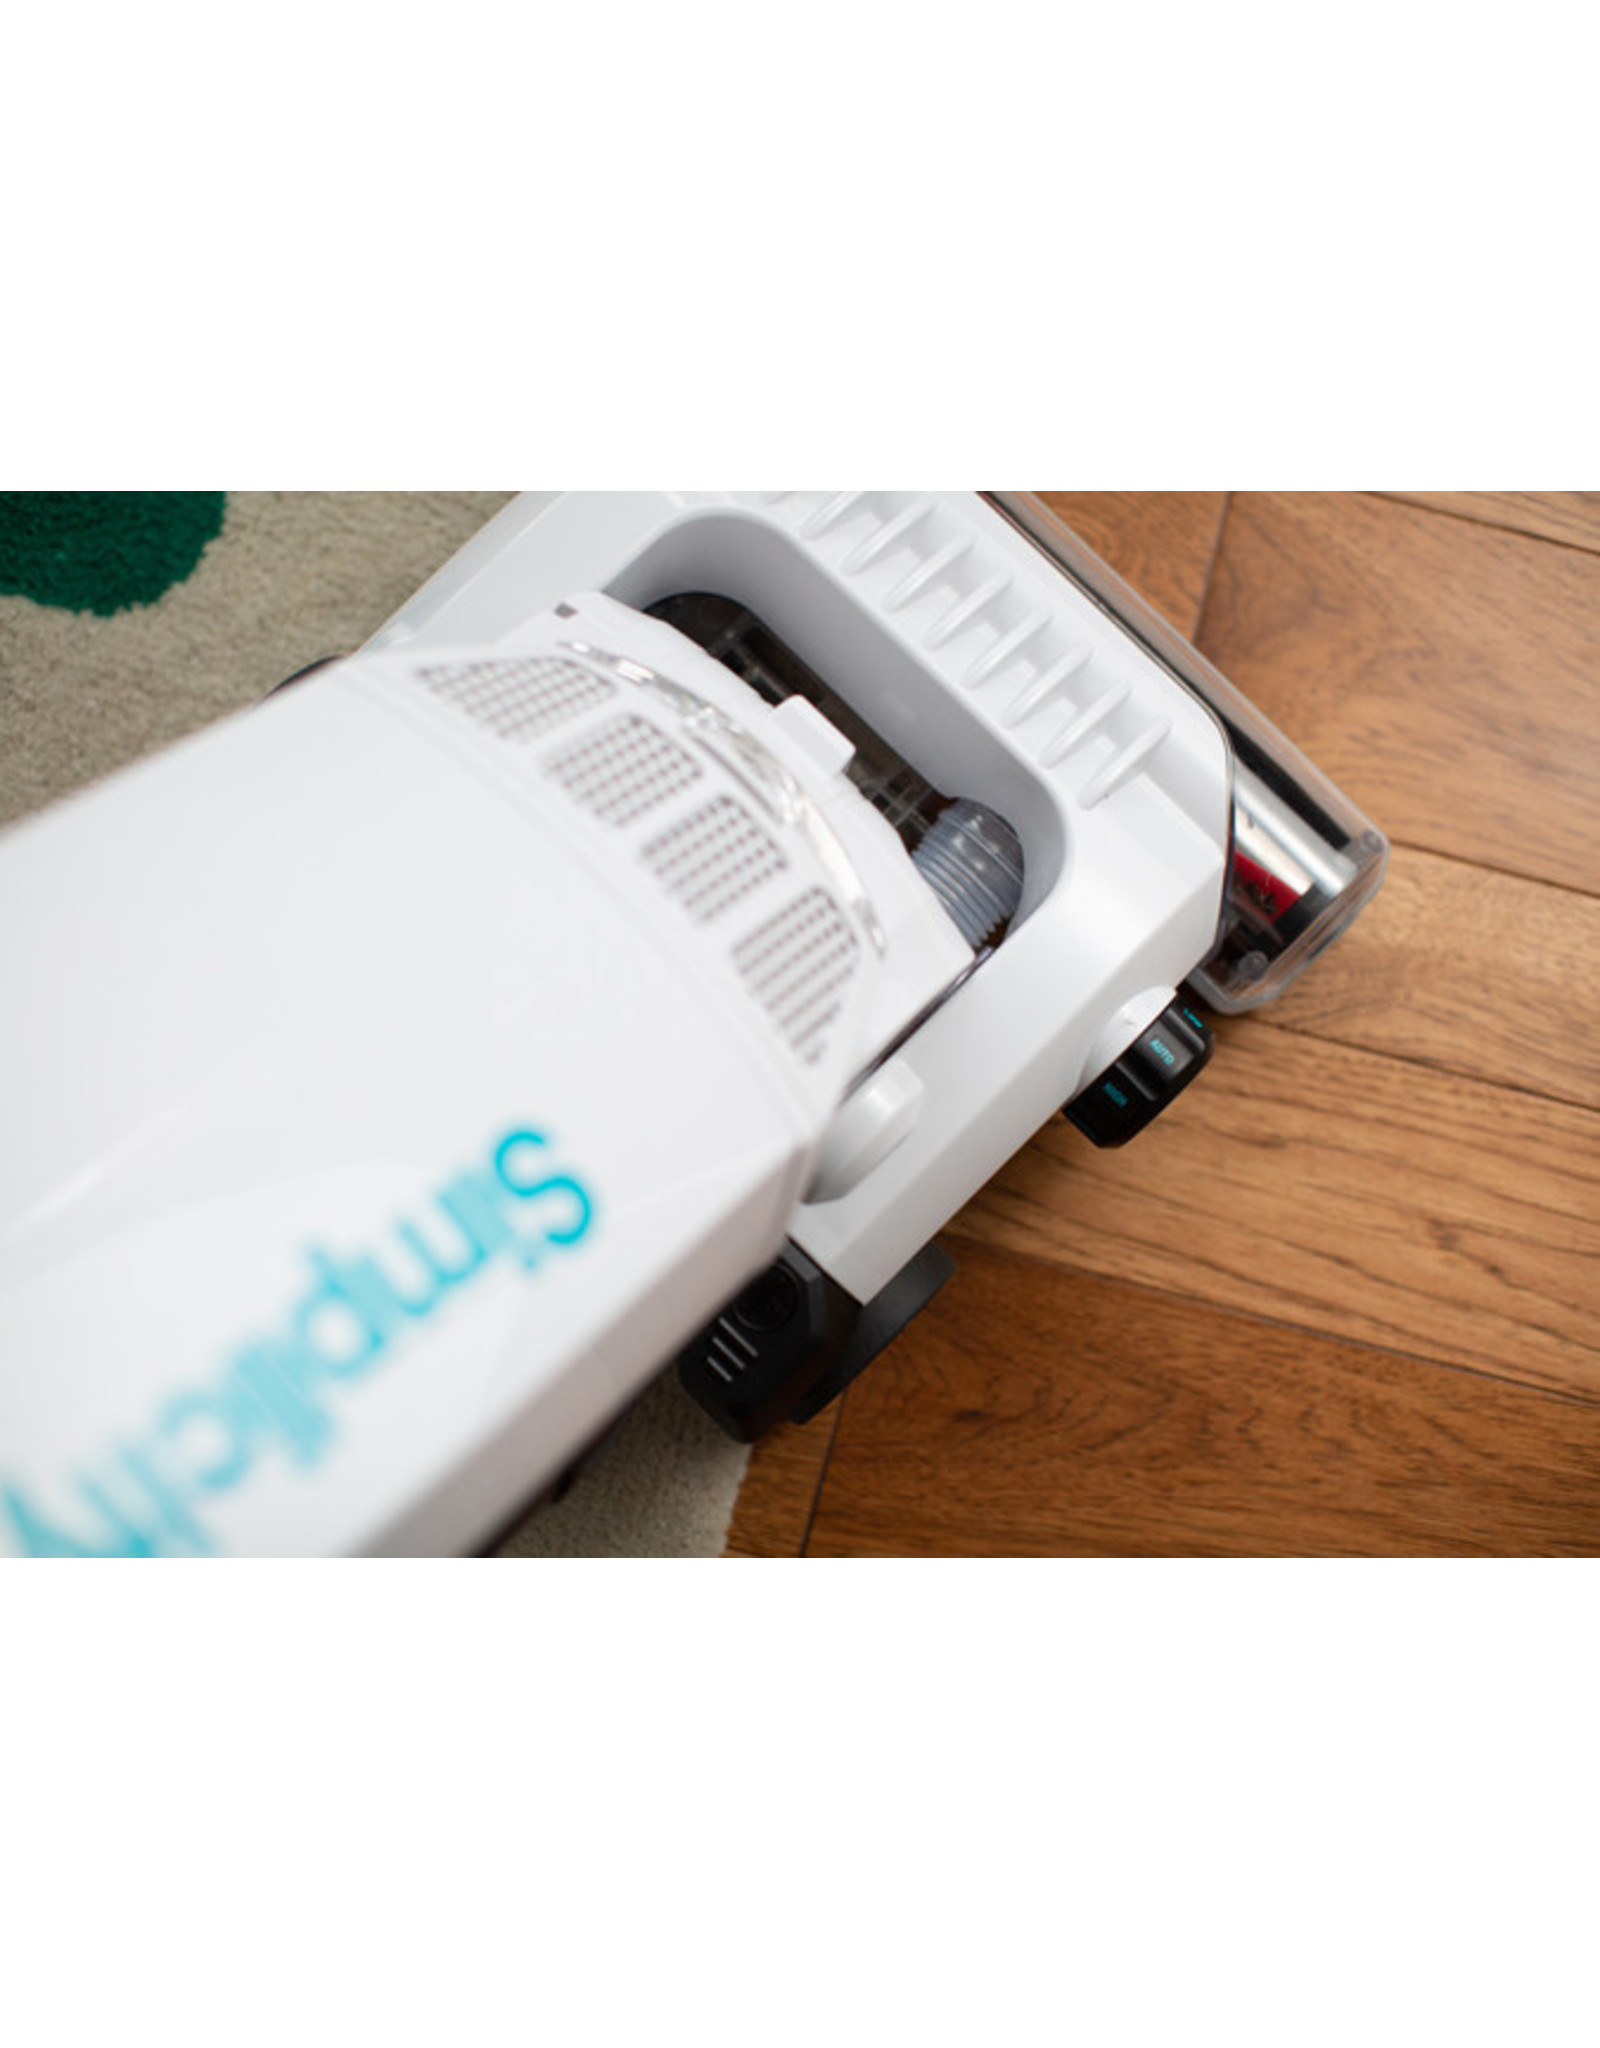 Simplicity Simplicity Allergy Upright  with HEPA Filtration Vacuum S20EZM